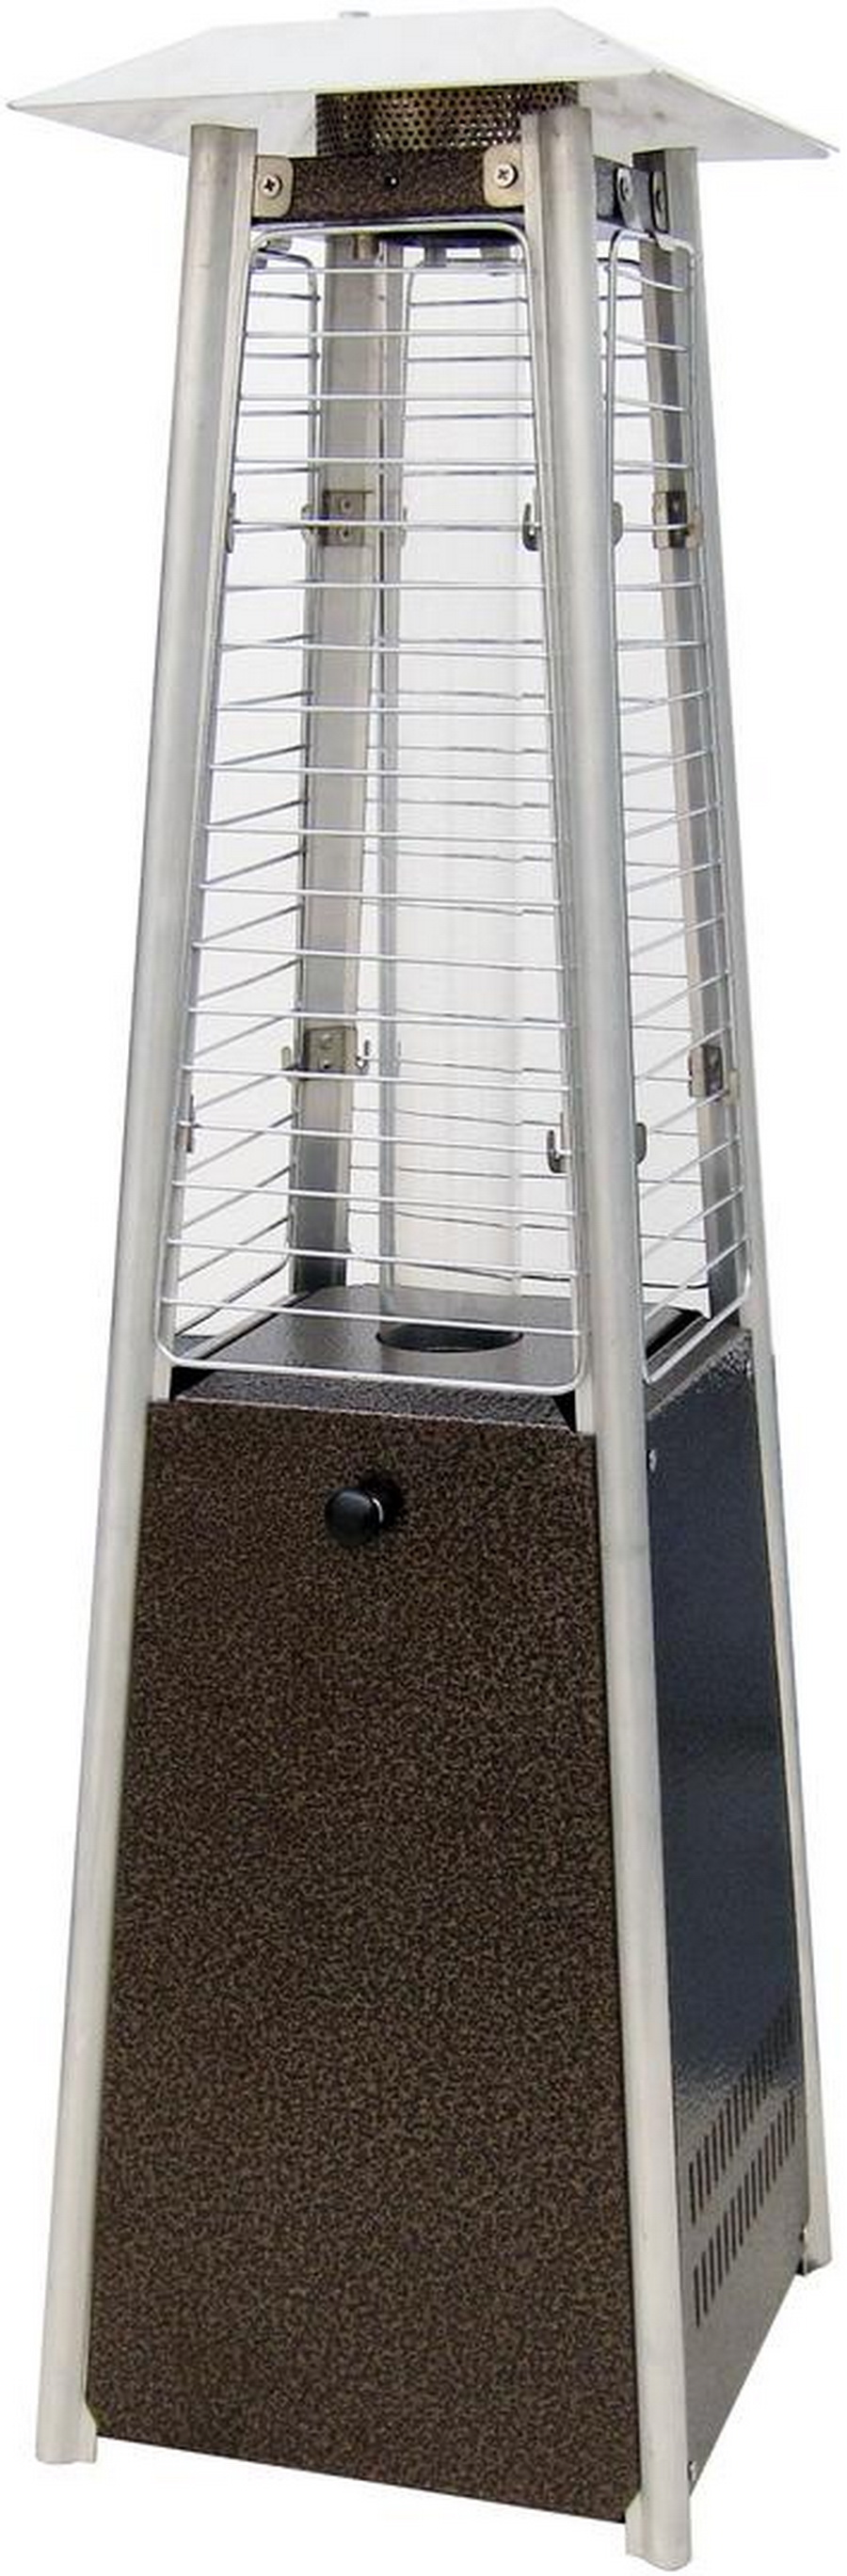 Sunheat Contemporary Square Design Tabletop Patio Heater (Golden Hammer or Stainless Steel Options Available)